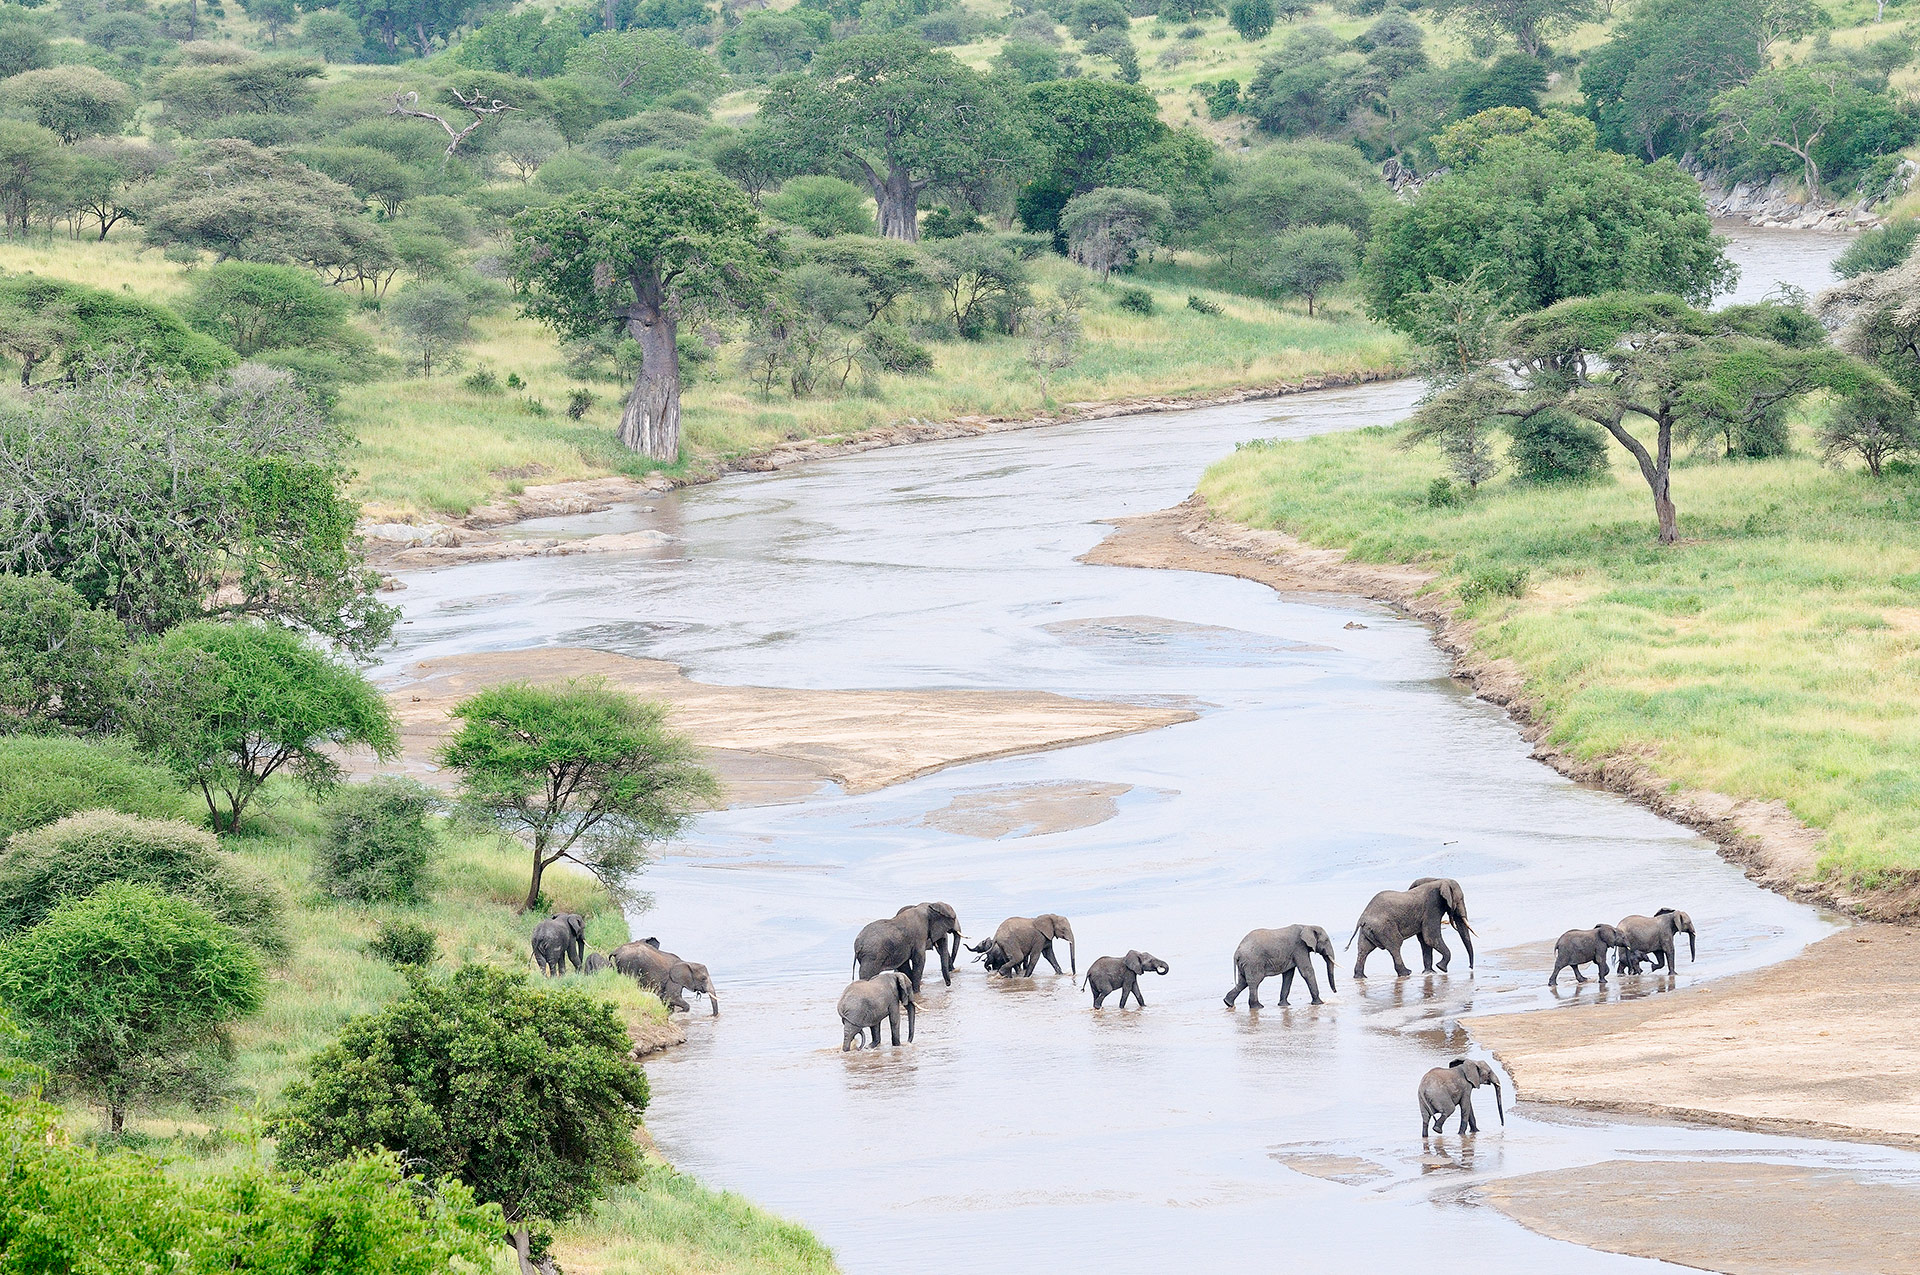 Elephants (Loxodonta africana) cross the Tarangire River in Tanzania